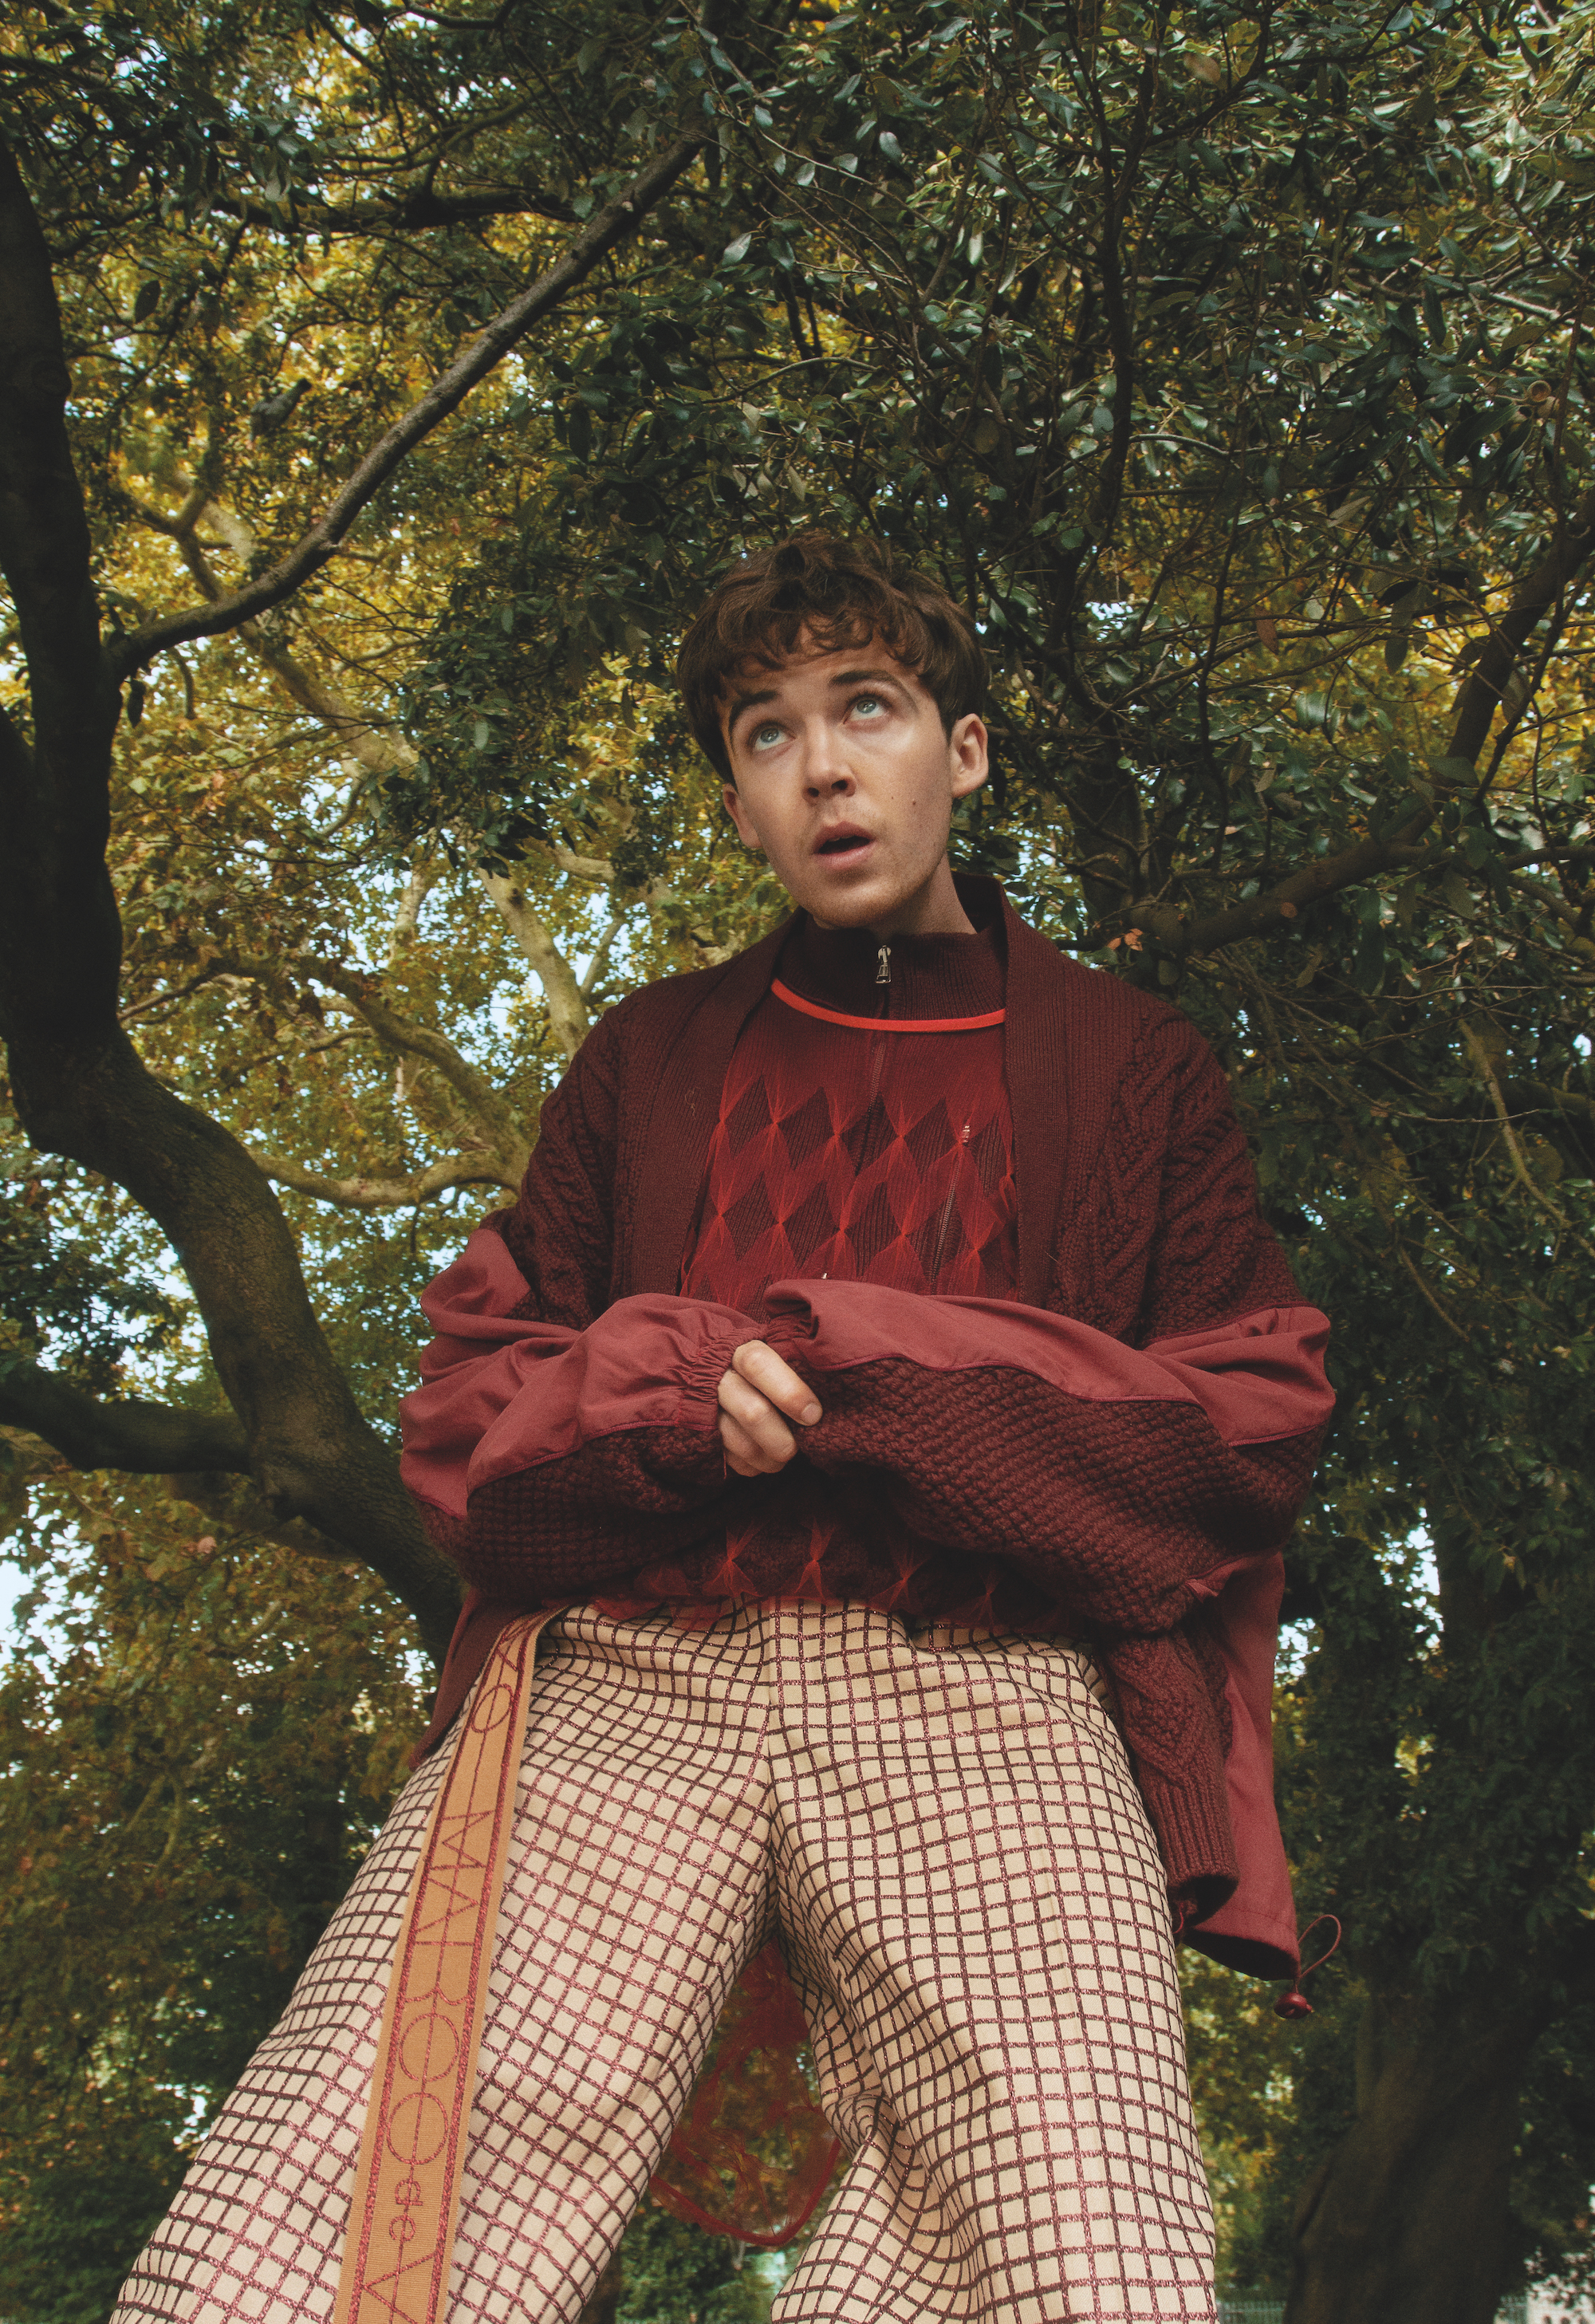 Alex Lawther by Matias Jalmari for Wonderland Magazine